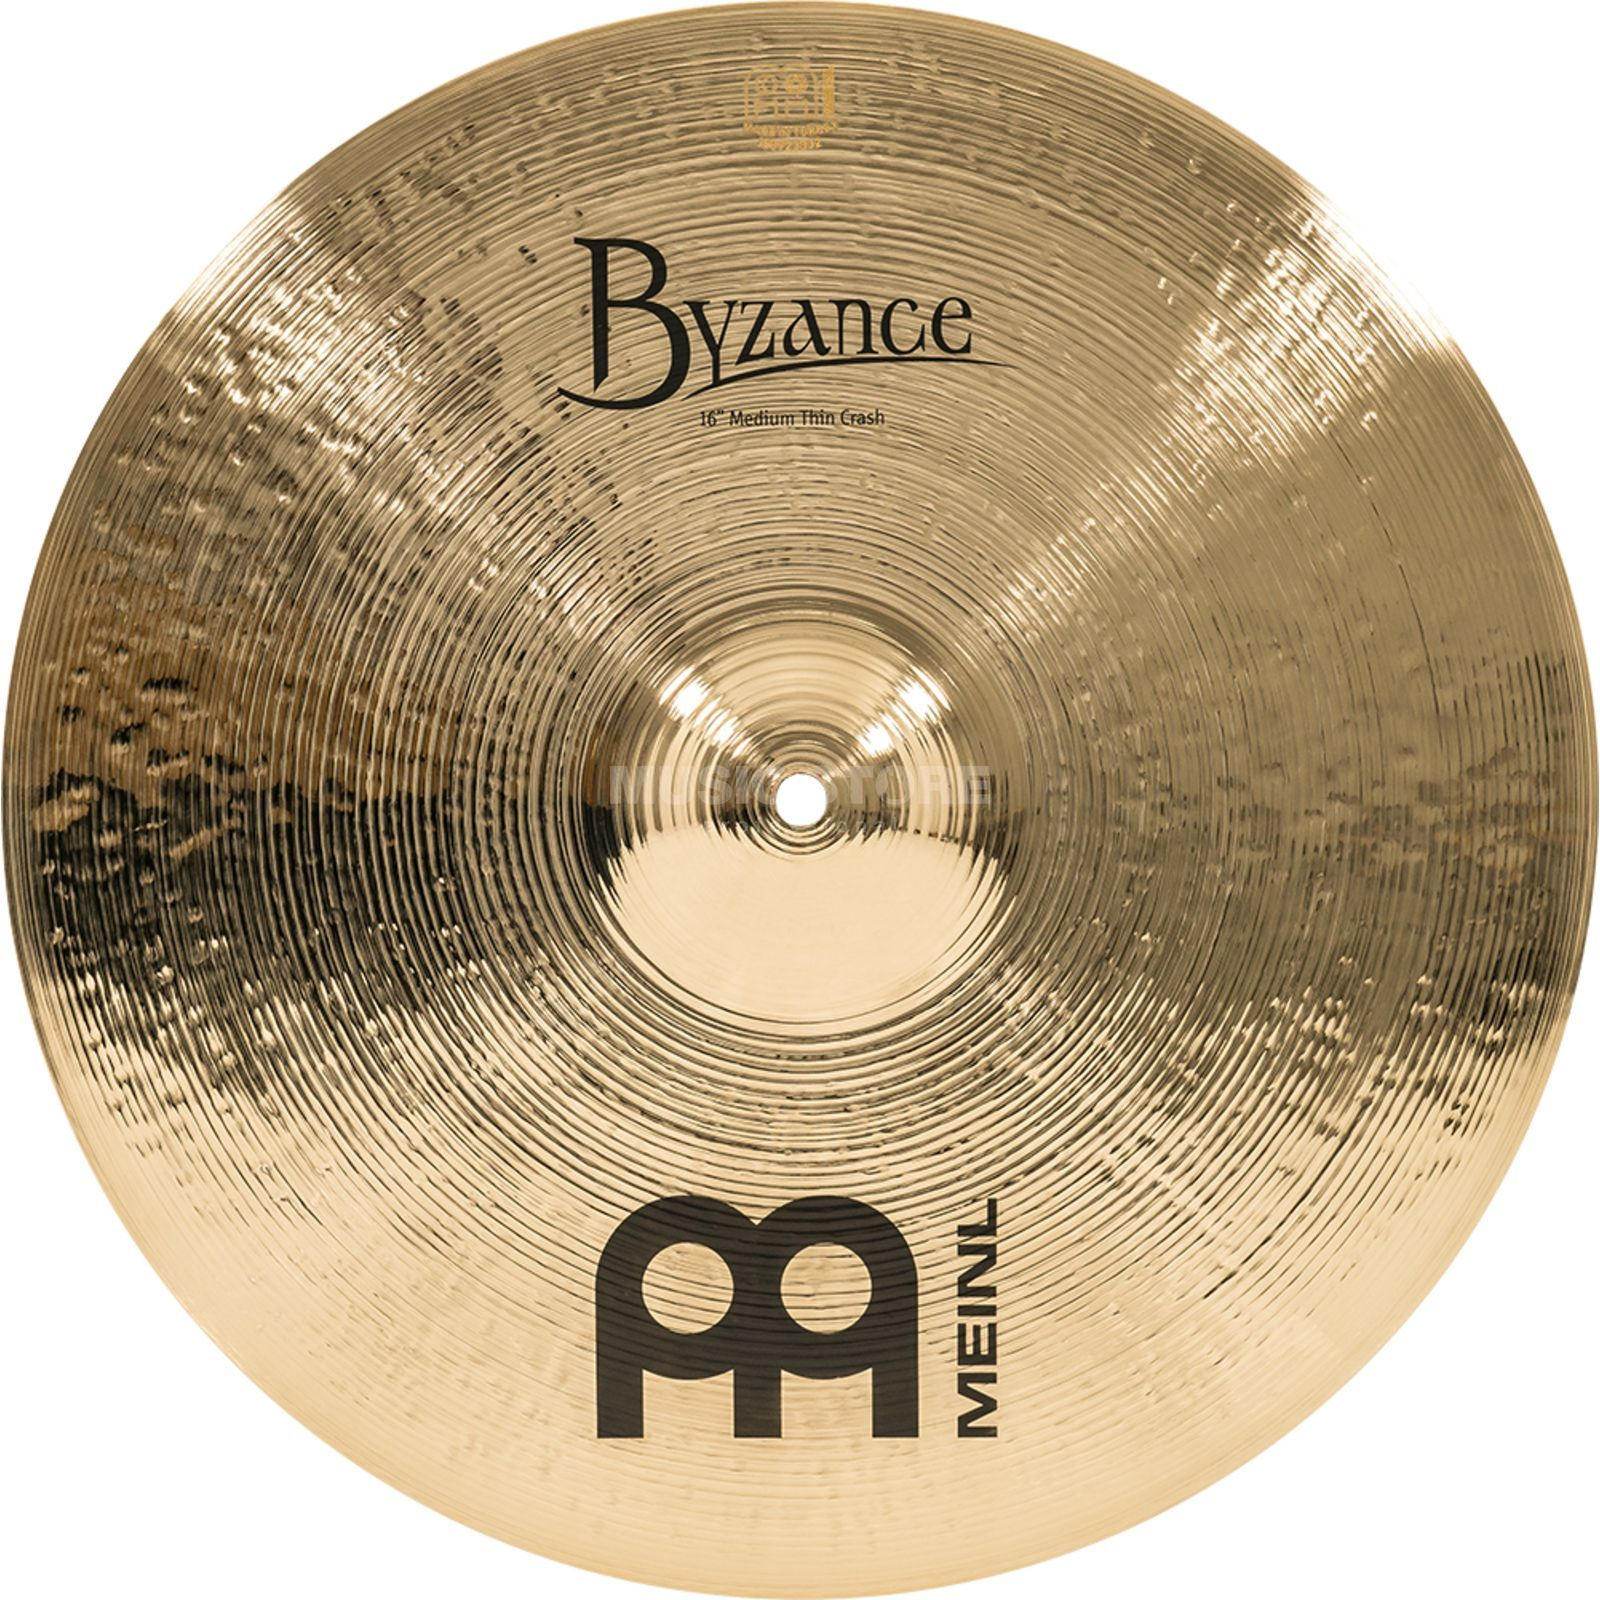 "Meinl Byzance Medium Thin Crash 16"" B16MTC-B, Brilliant Immagine prodotto"